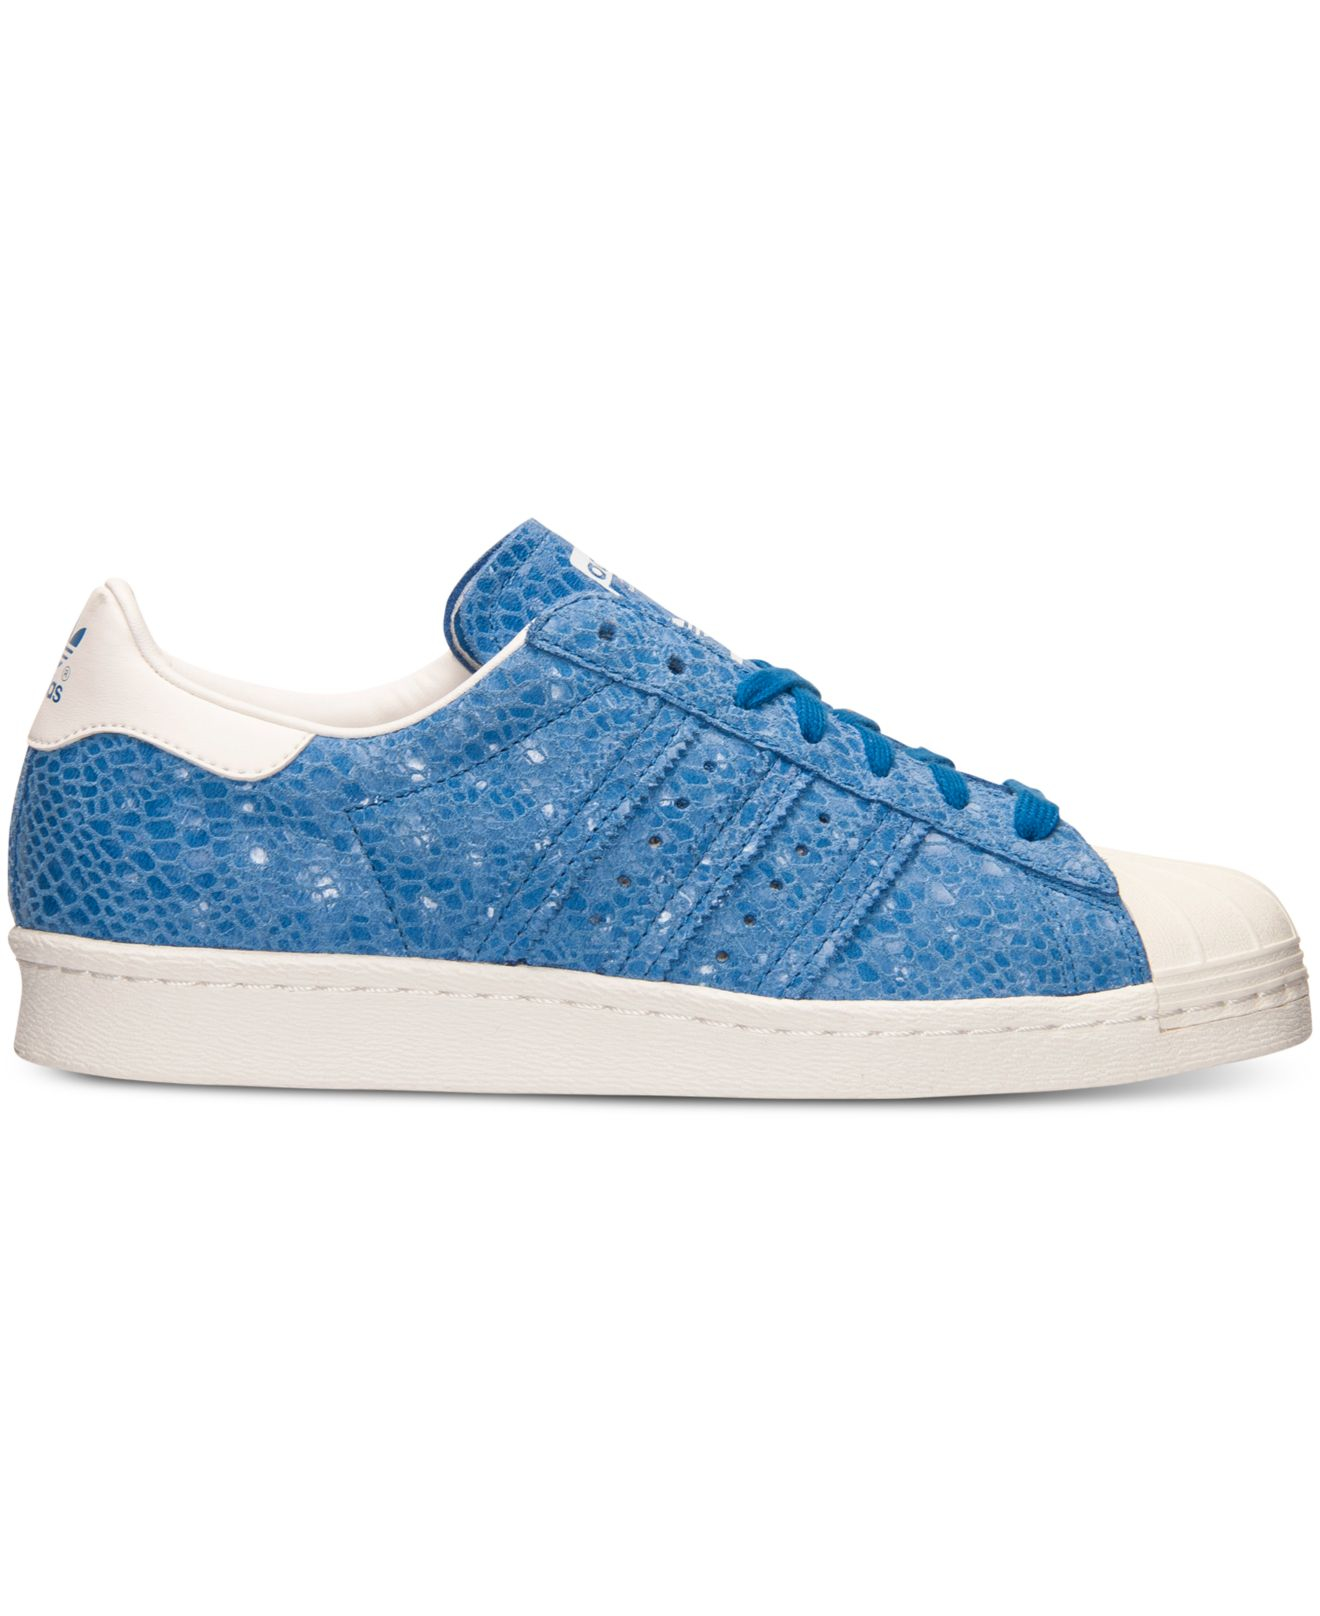 adidas superstar sneakers finish line